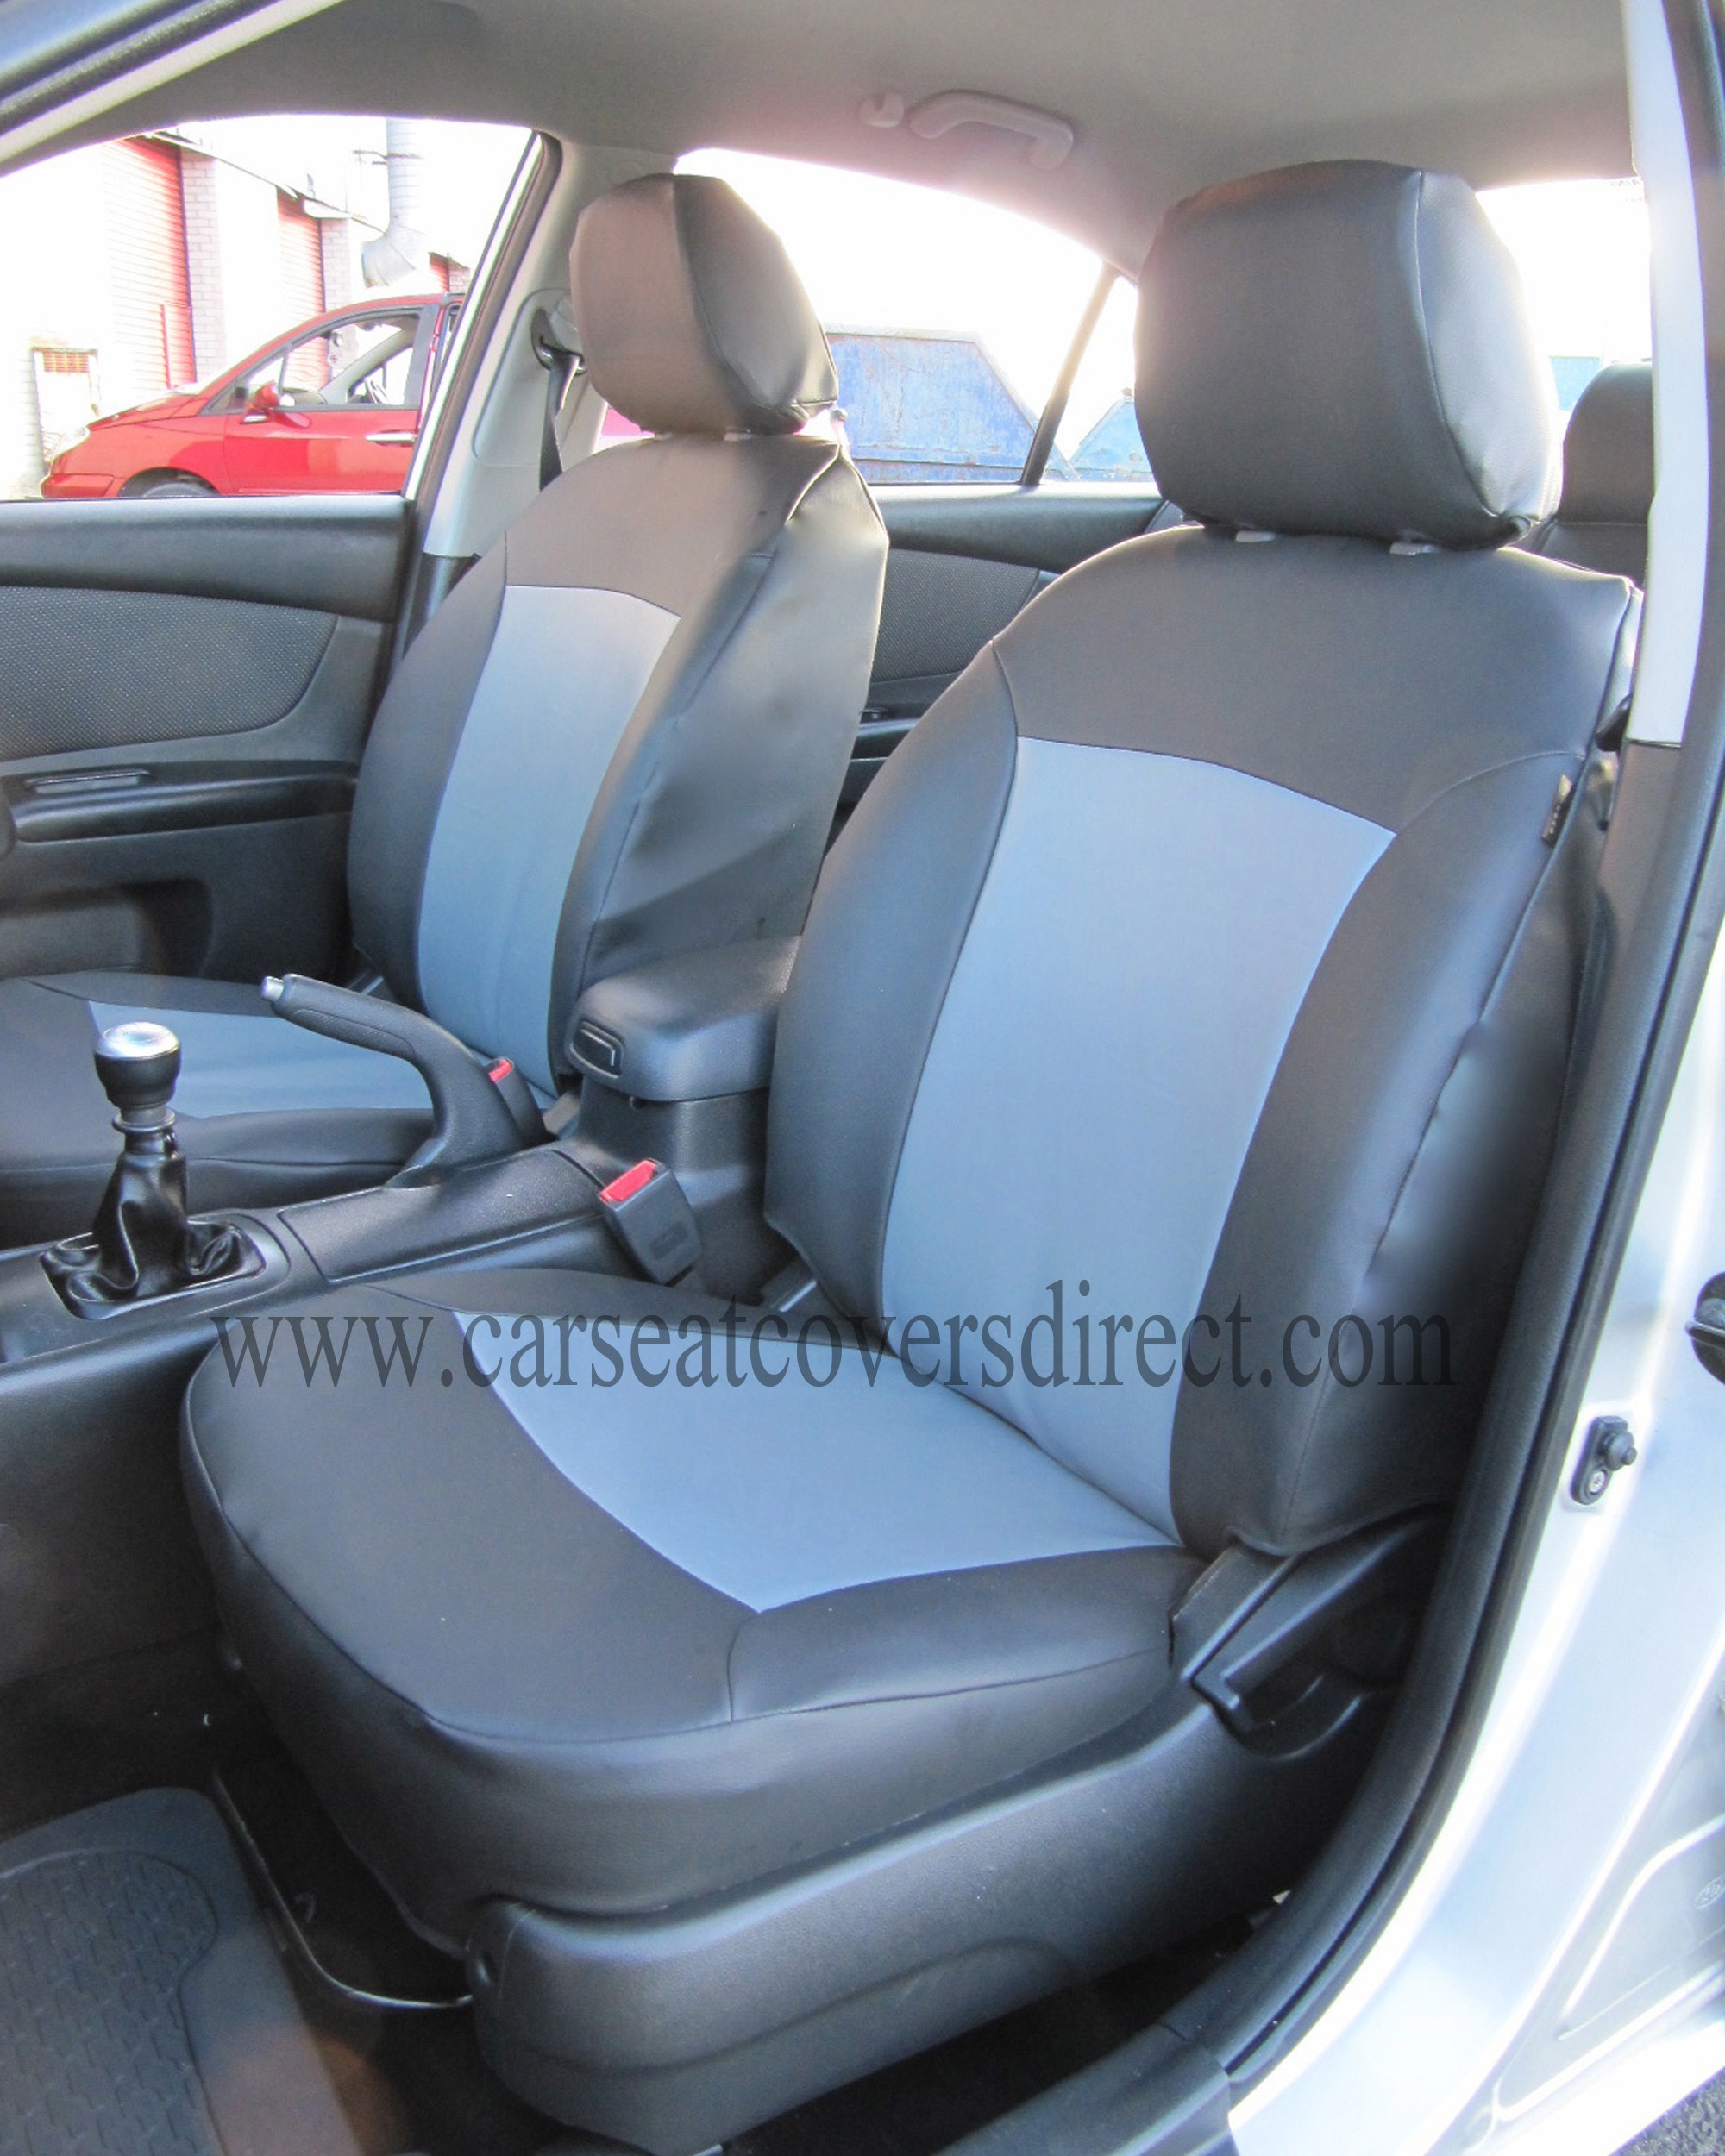 kia magentis seat covers car seat covers direct tailored to your choice. Black Bedroom Furniture Sets. Home Design Ideas